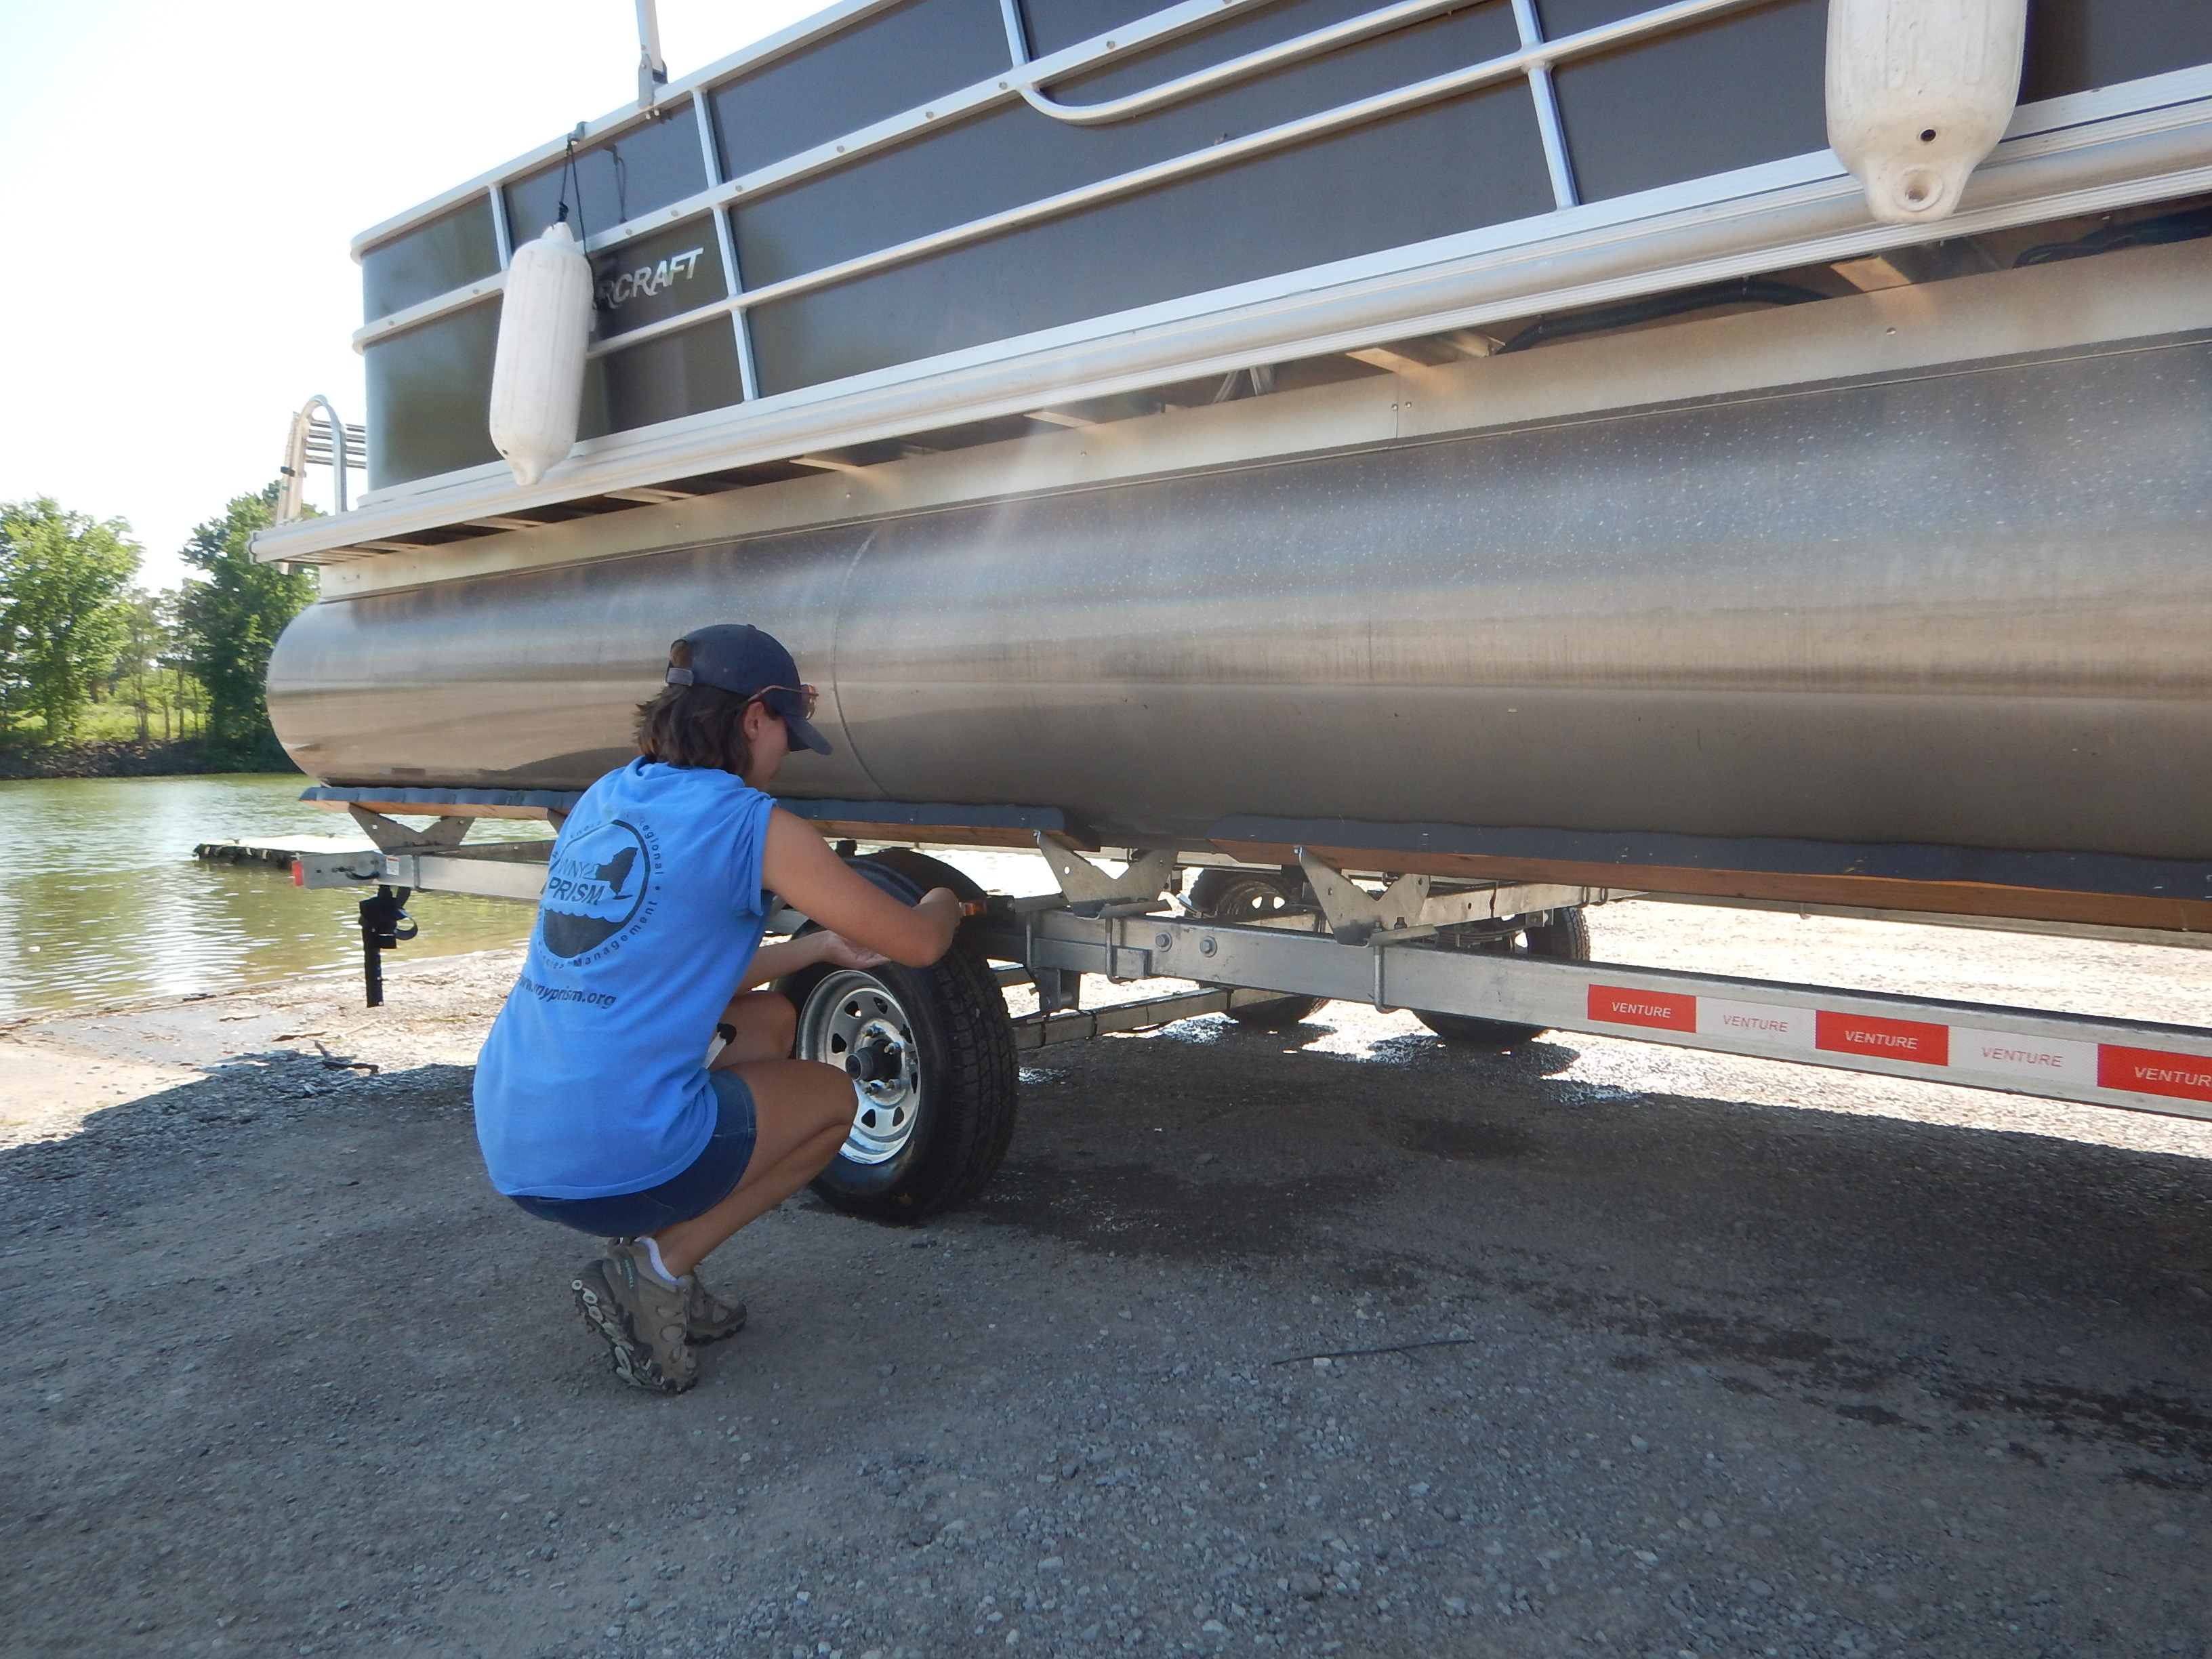 a person crouches by a boat on a trailer to inspect it